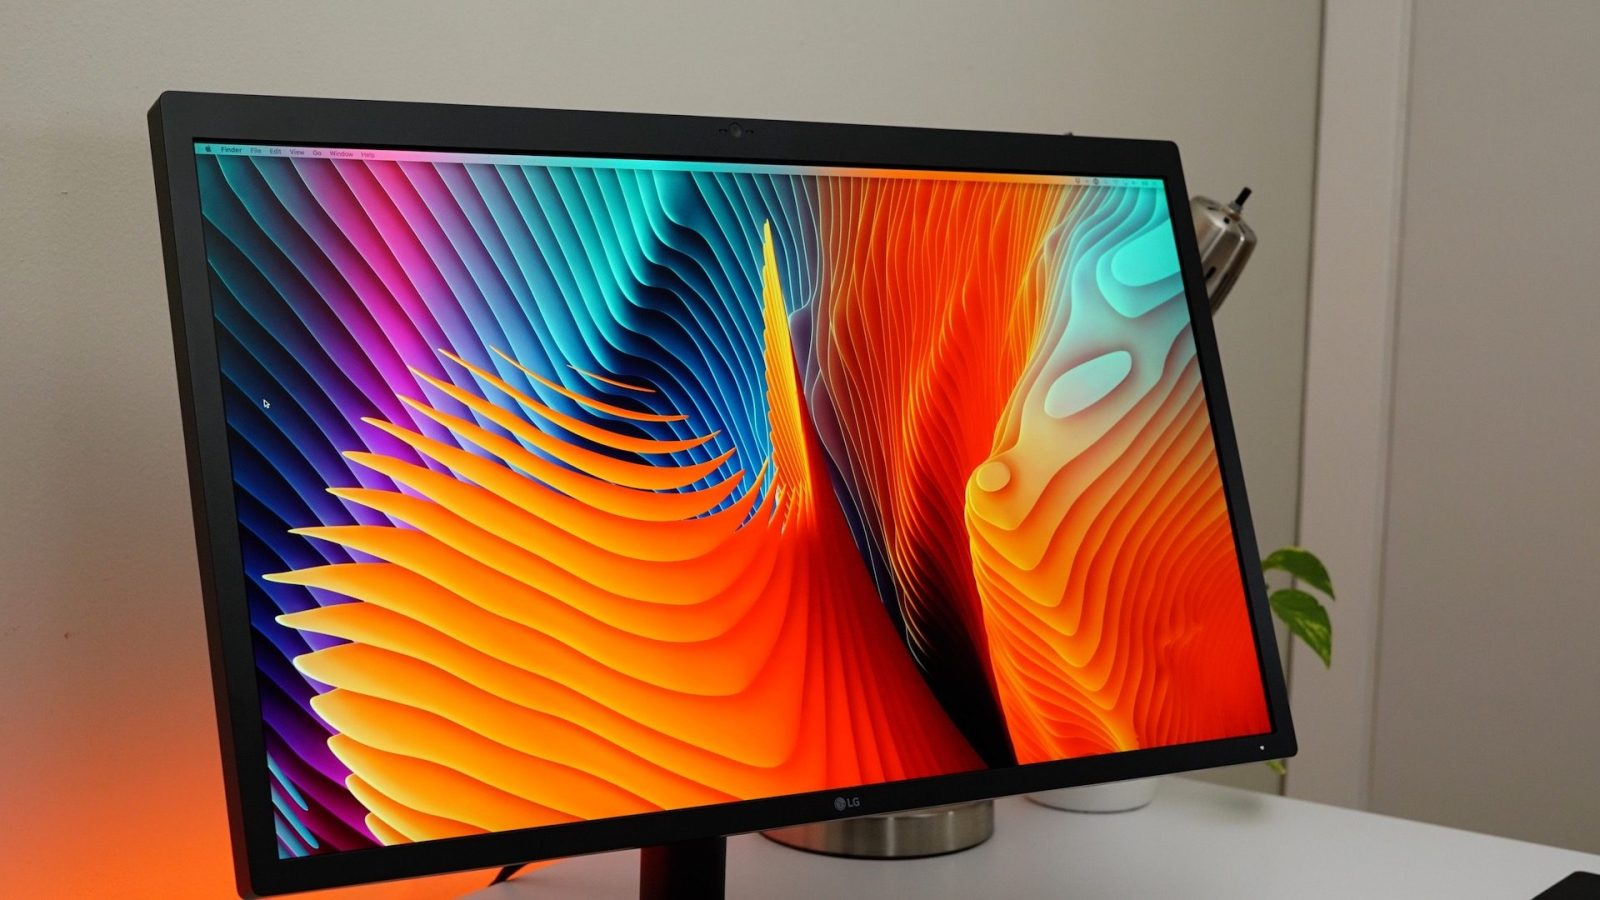 LG's UltraFine 5K monitor upgrades your Mac setup for $550 (Open-Box